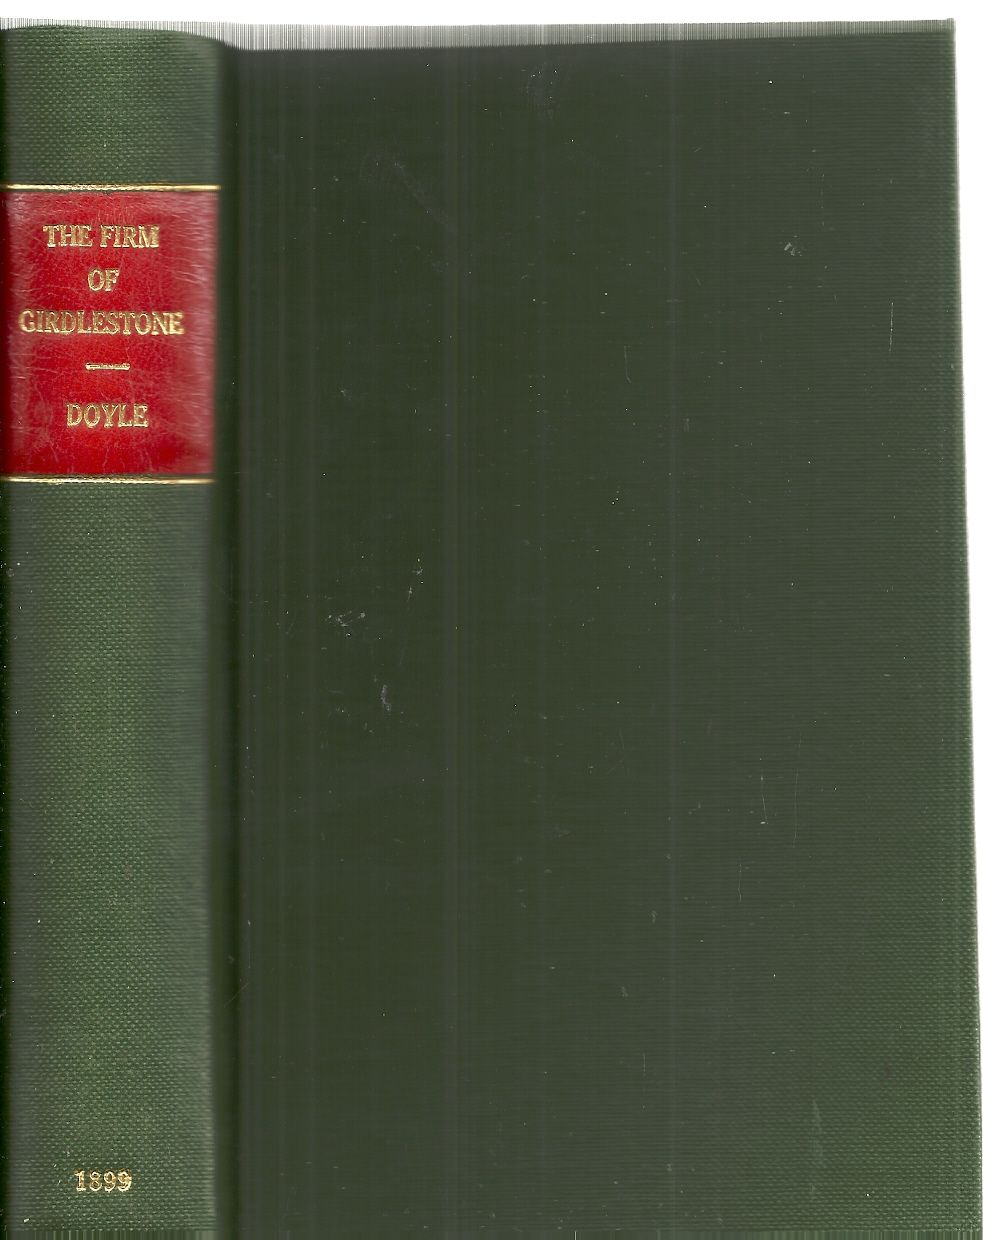 The Firm of Girdlestone, A. CONAN DOYLE